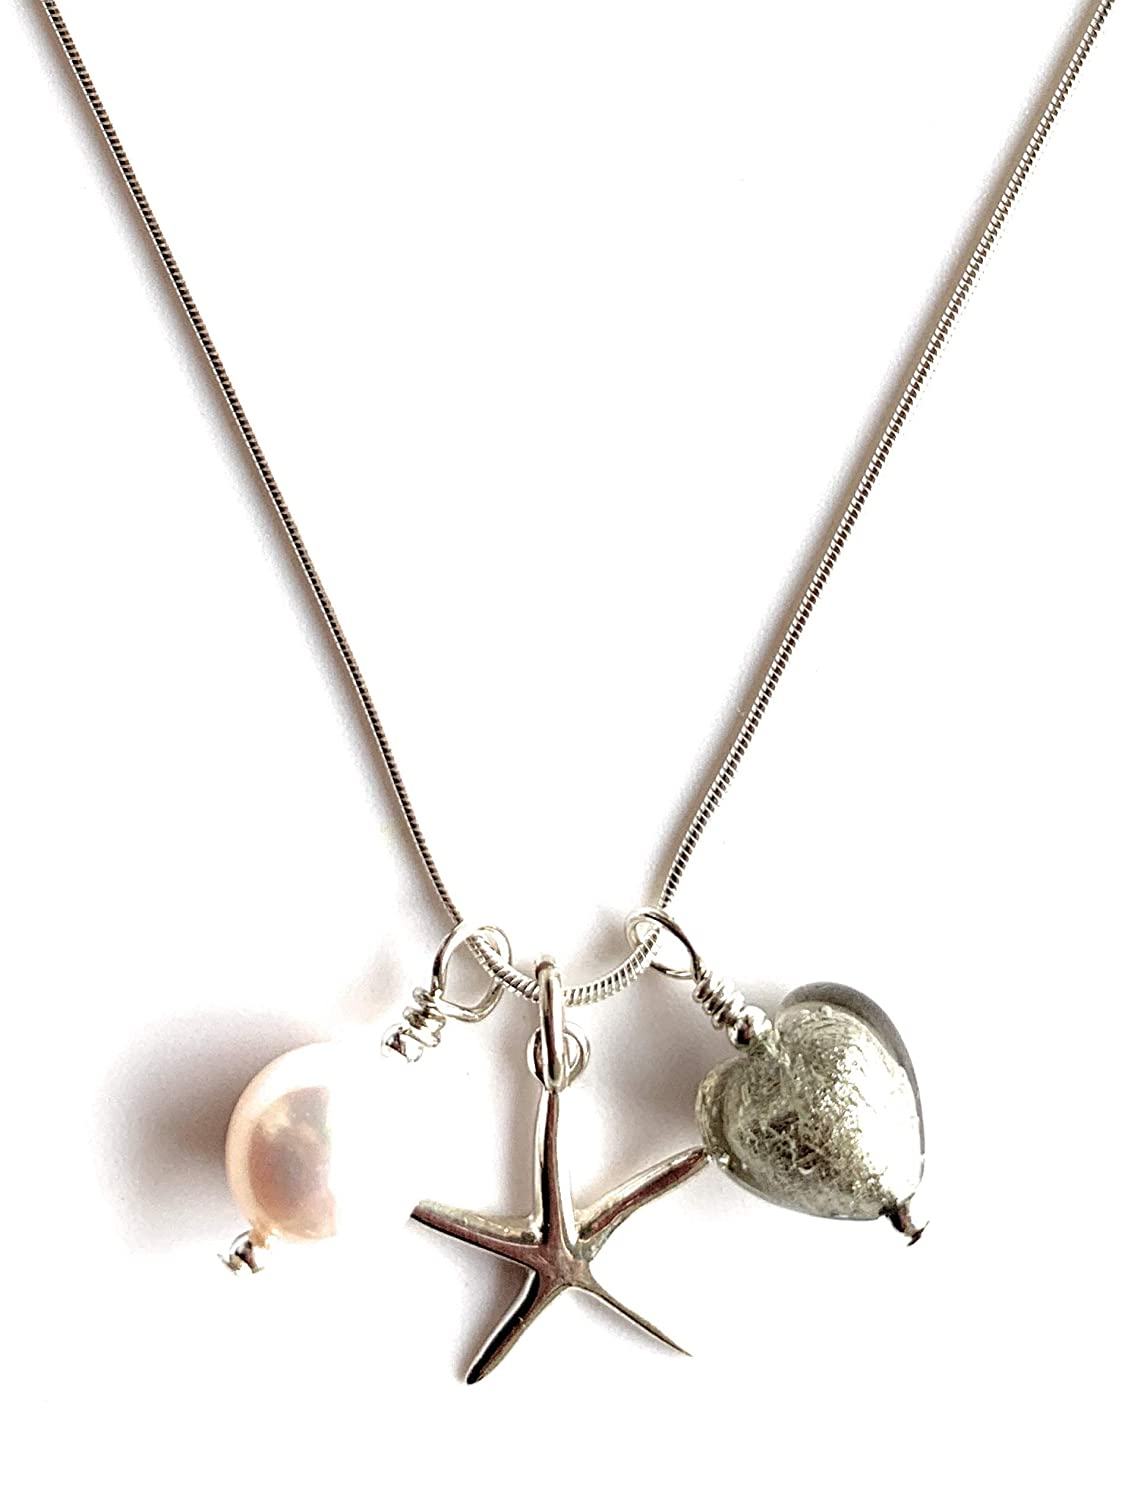 white pearl and chain jade, teal Murano glass heart Diana Ingram three charm necklace in 22 Carat gold vermeil with sea green starfish